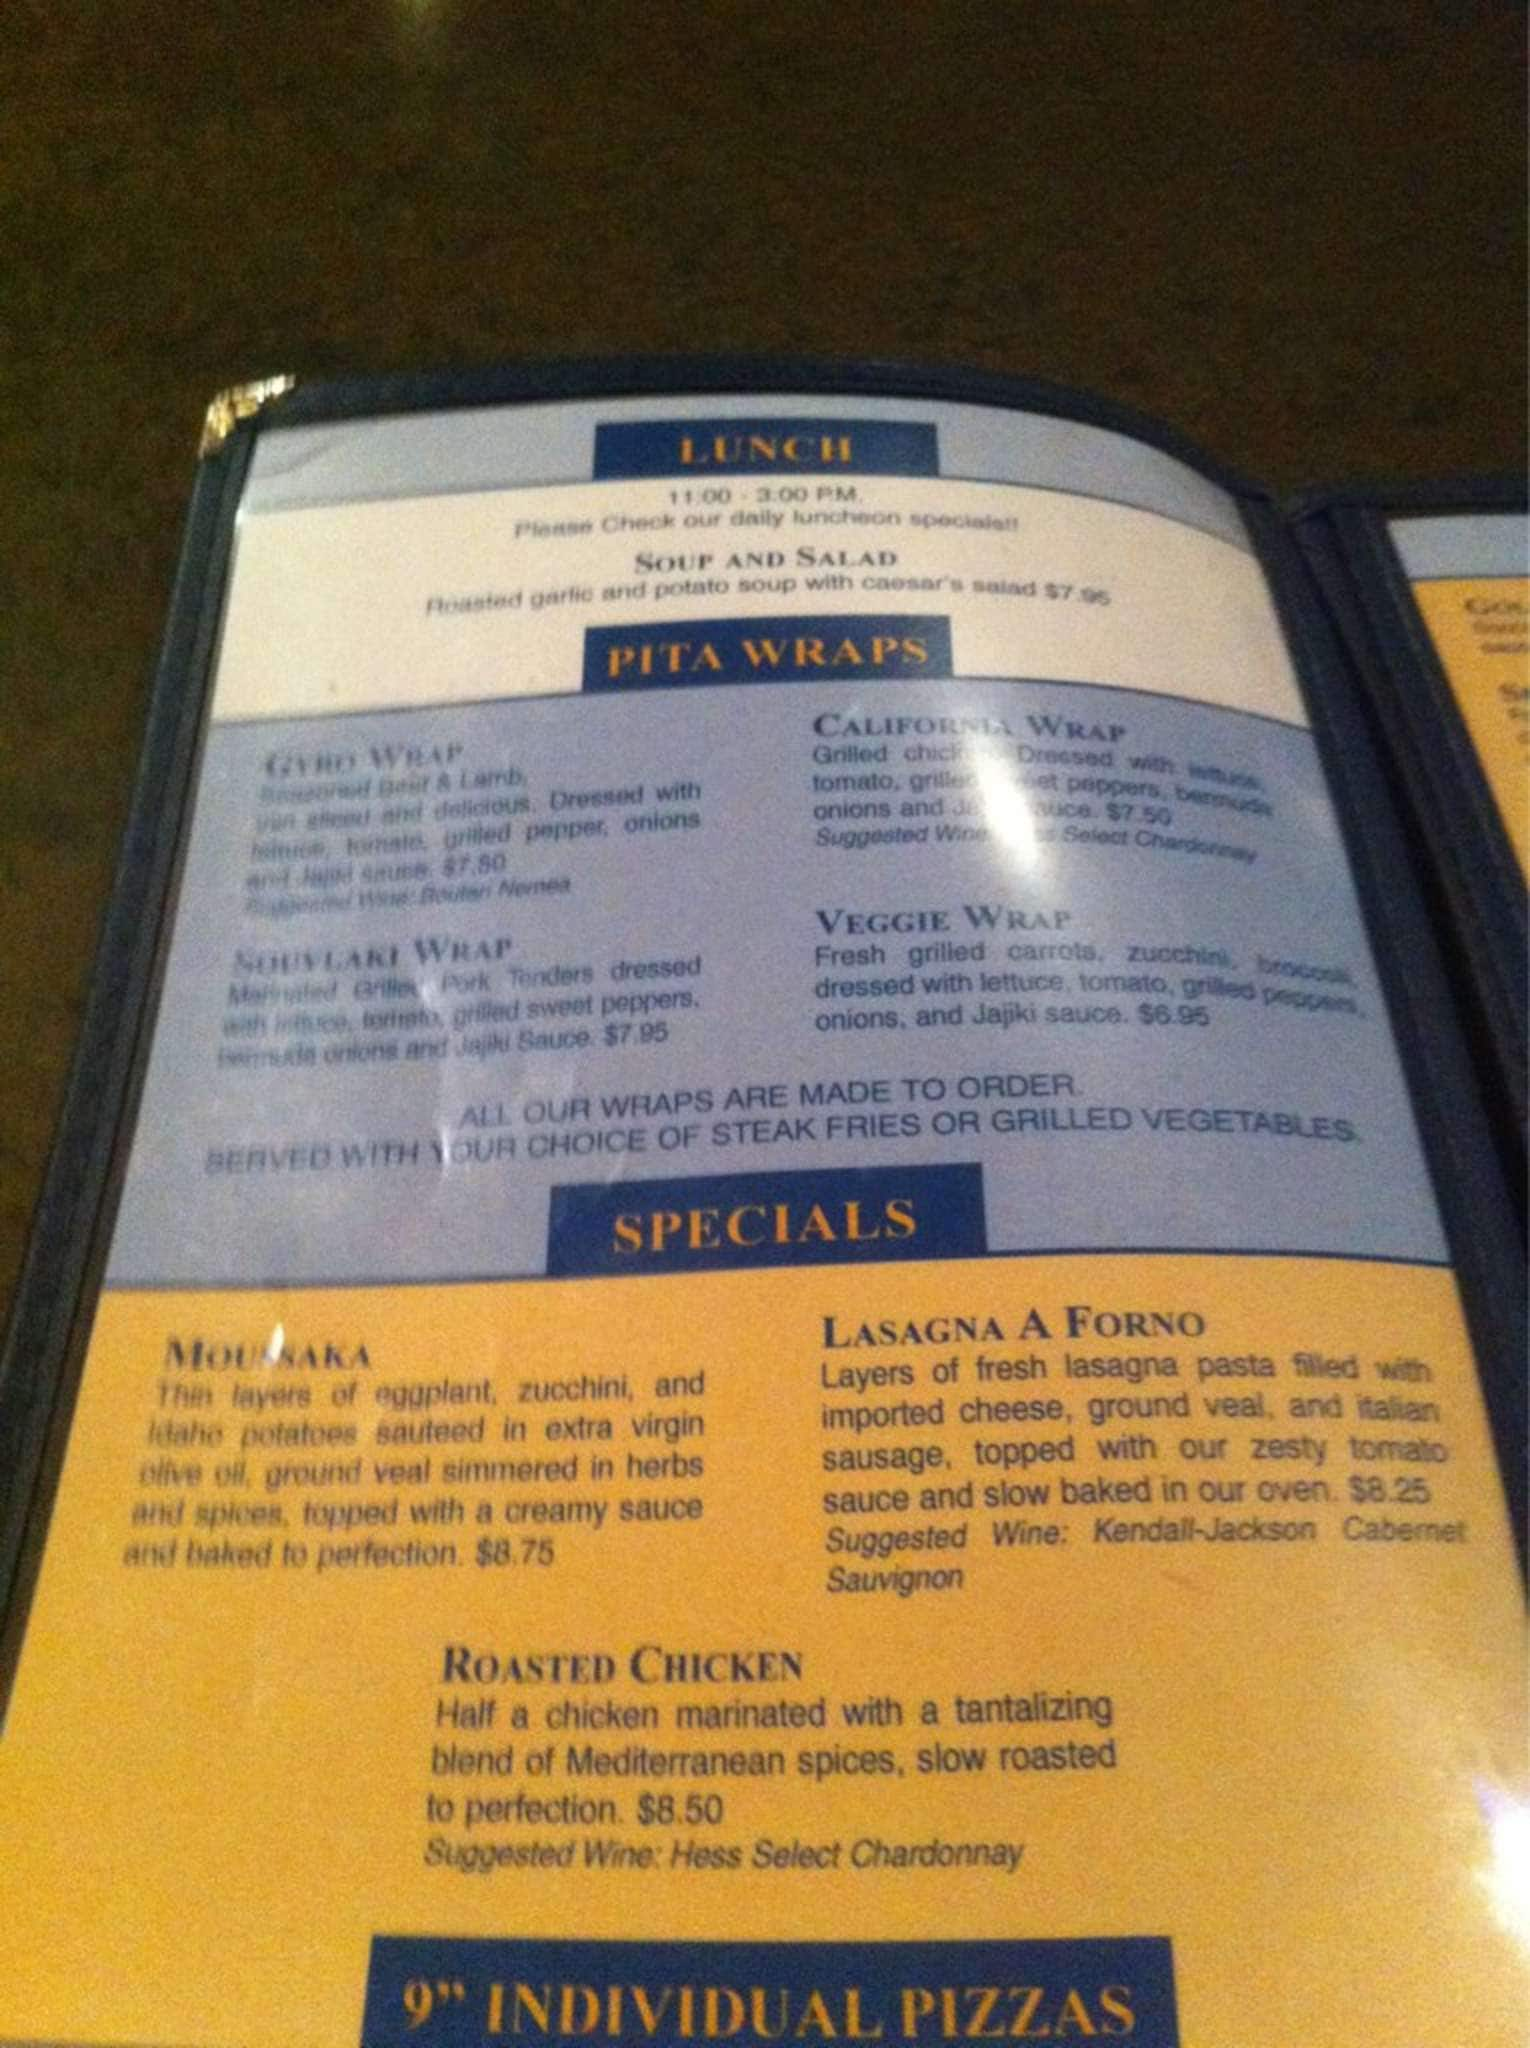 Acropolis cuisine menu menu for acropolis cuisine for Acropolis cuisine metairie menu